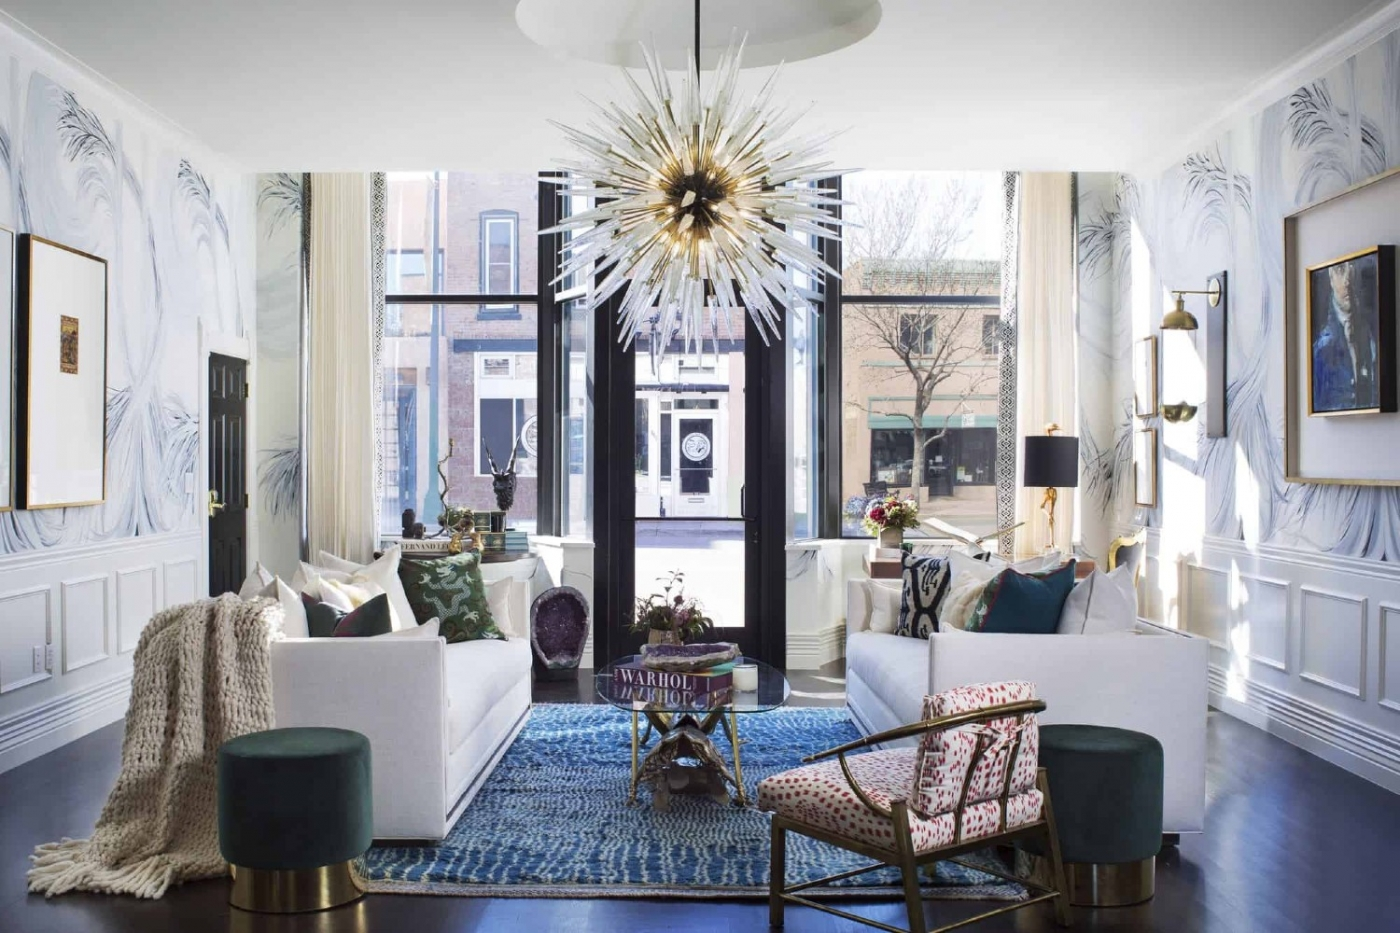 Andrea Schumacher Interiors, From Denver To The World ft andrea schumacher Andrea Schumacher Interiors, From Denver To The World Andrea Schumacher Interiors From Denver To The World ft 1400x933